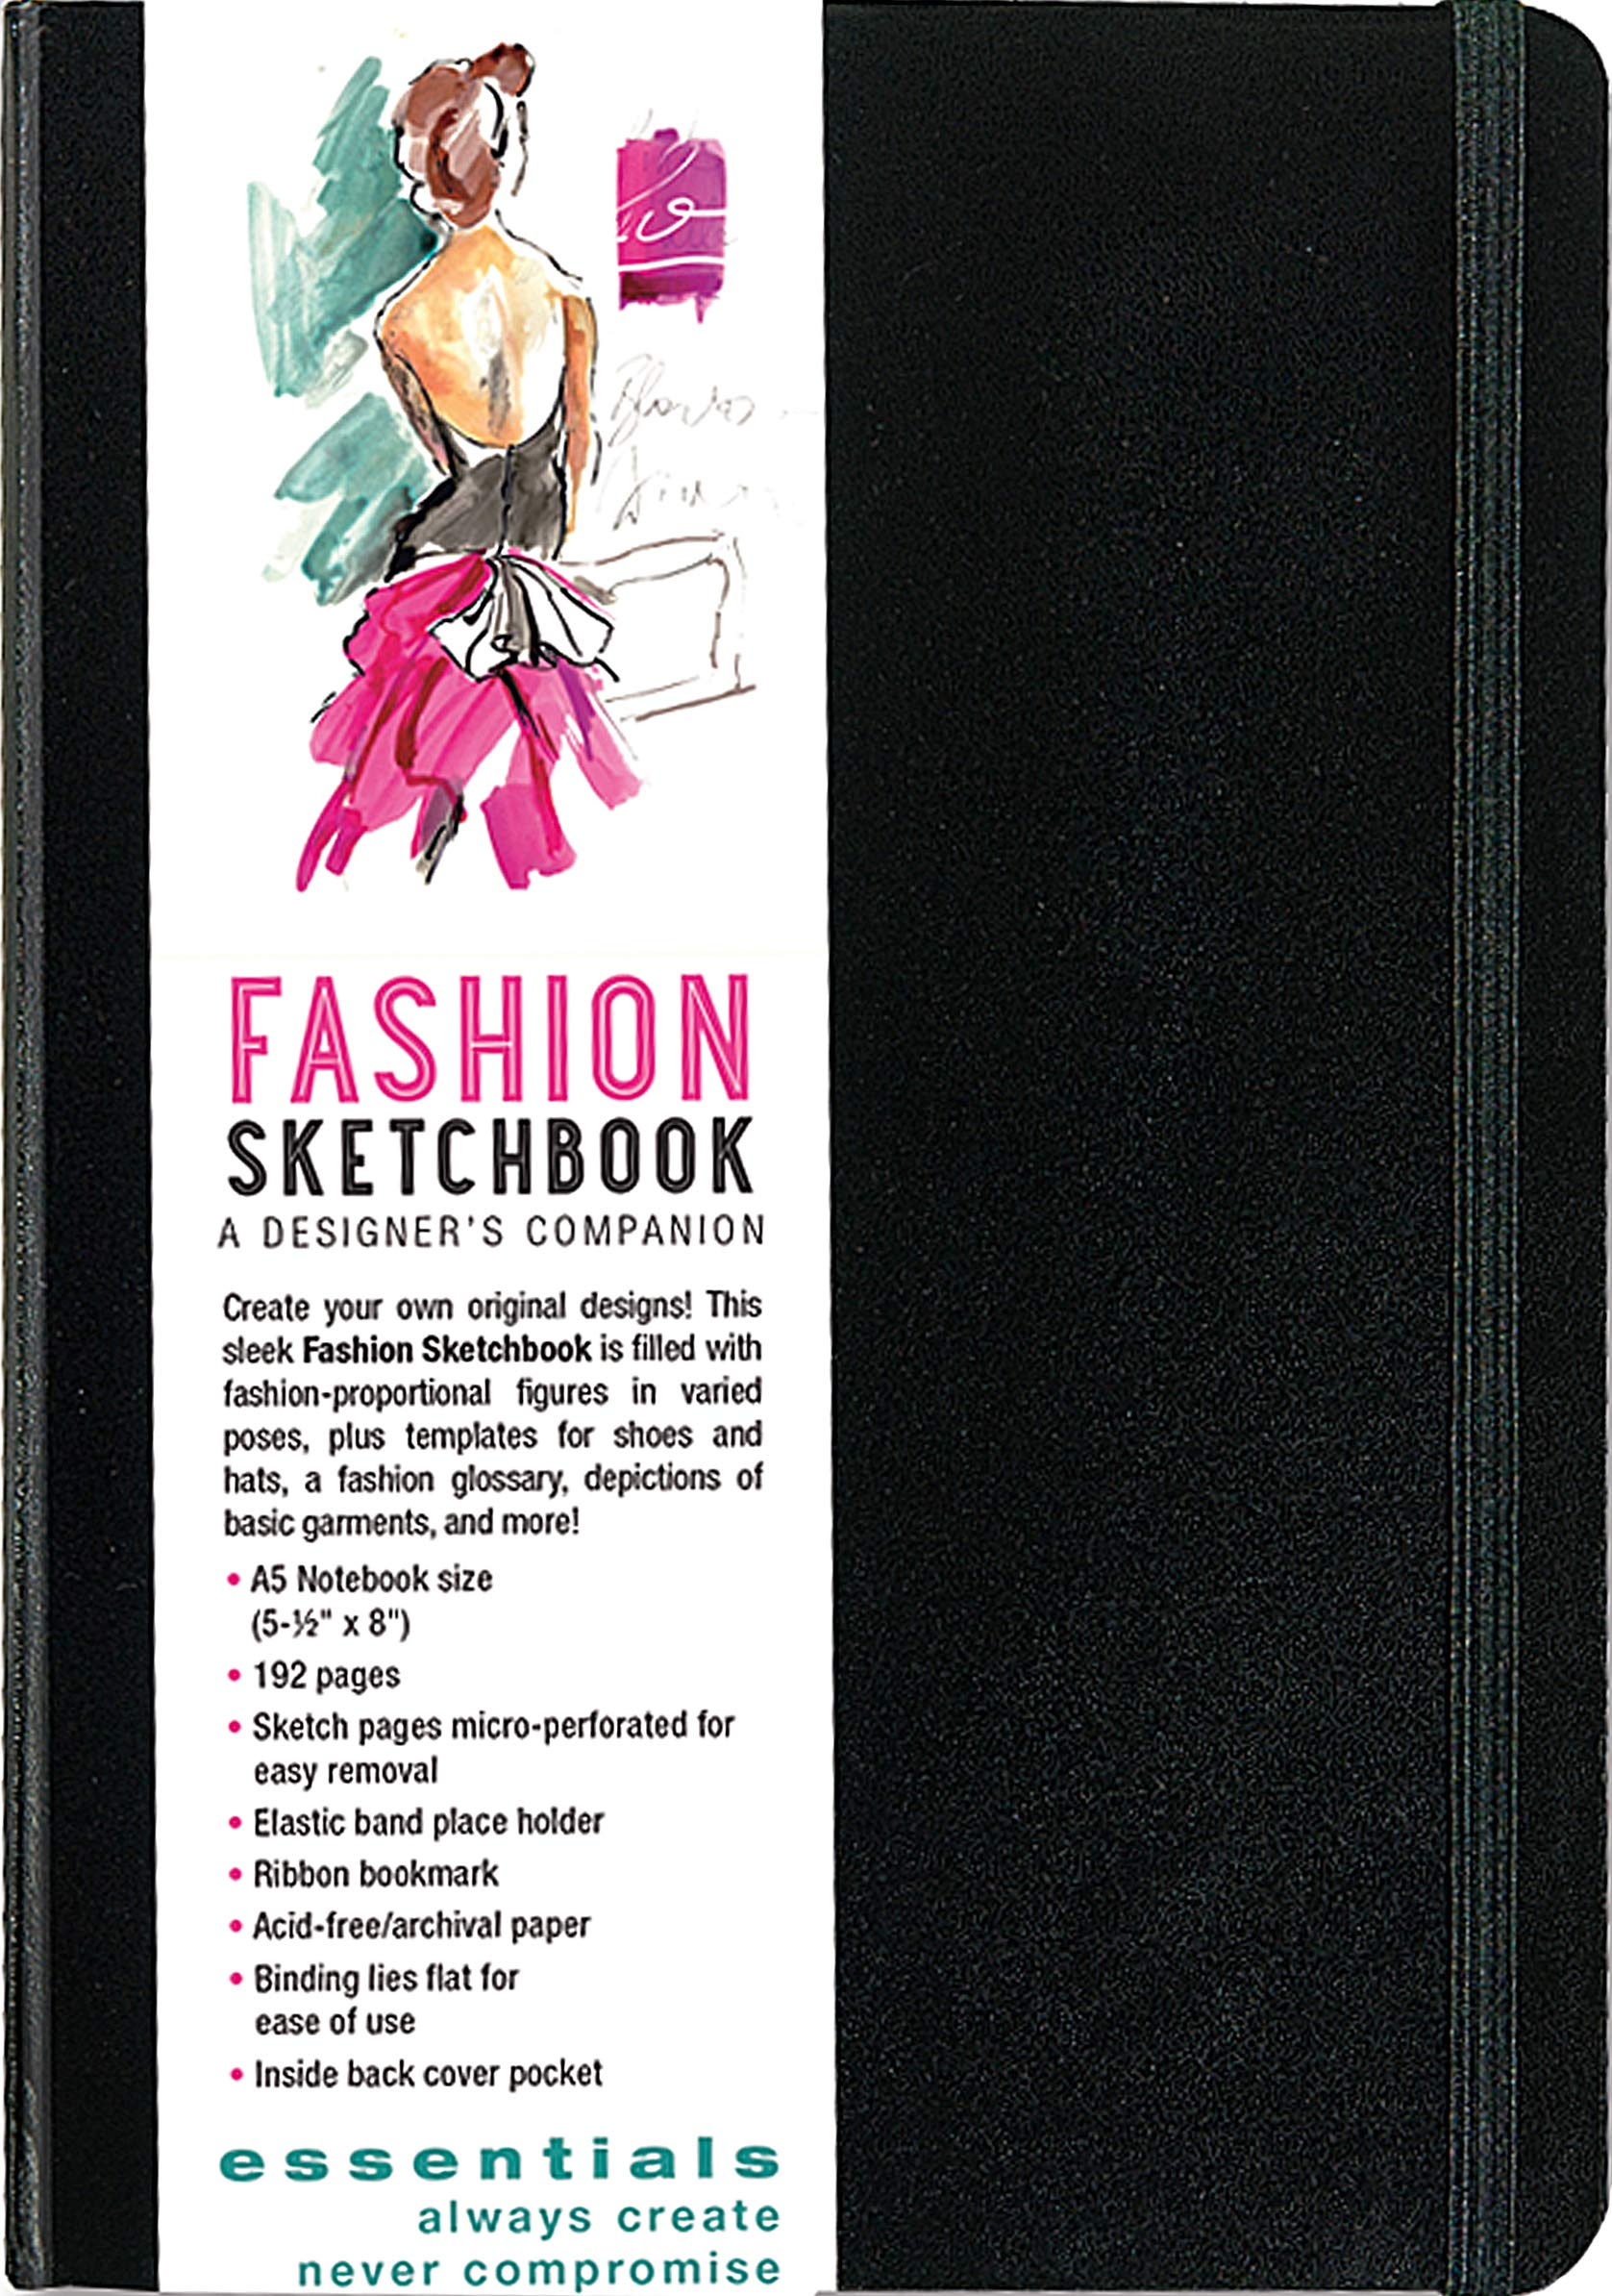 Essentials Fashion Sketchbook 366 Figure Templates To Create Your Own Designs Fashion Sketchpad Peter Pauper Press 8601407003179 Amazon Com Books